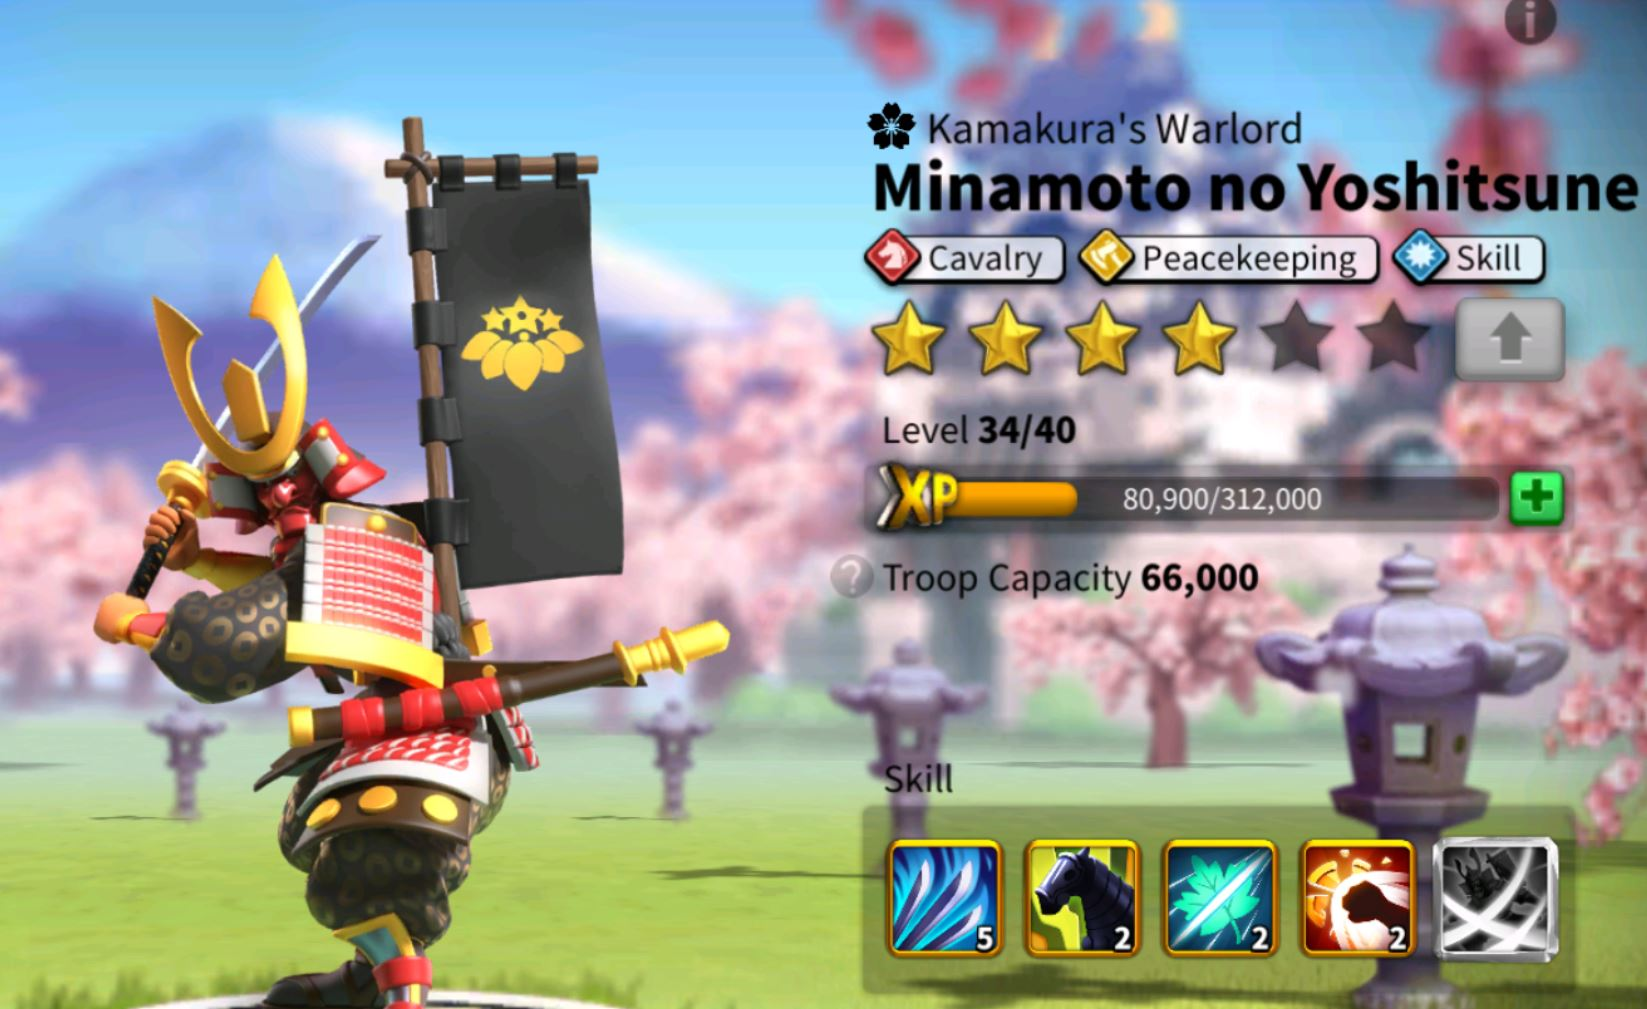 Minamoto and his skills in Rise of Kingdoms